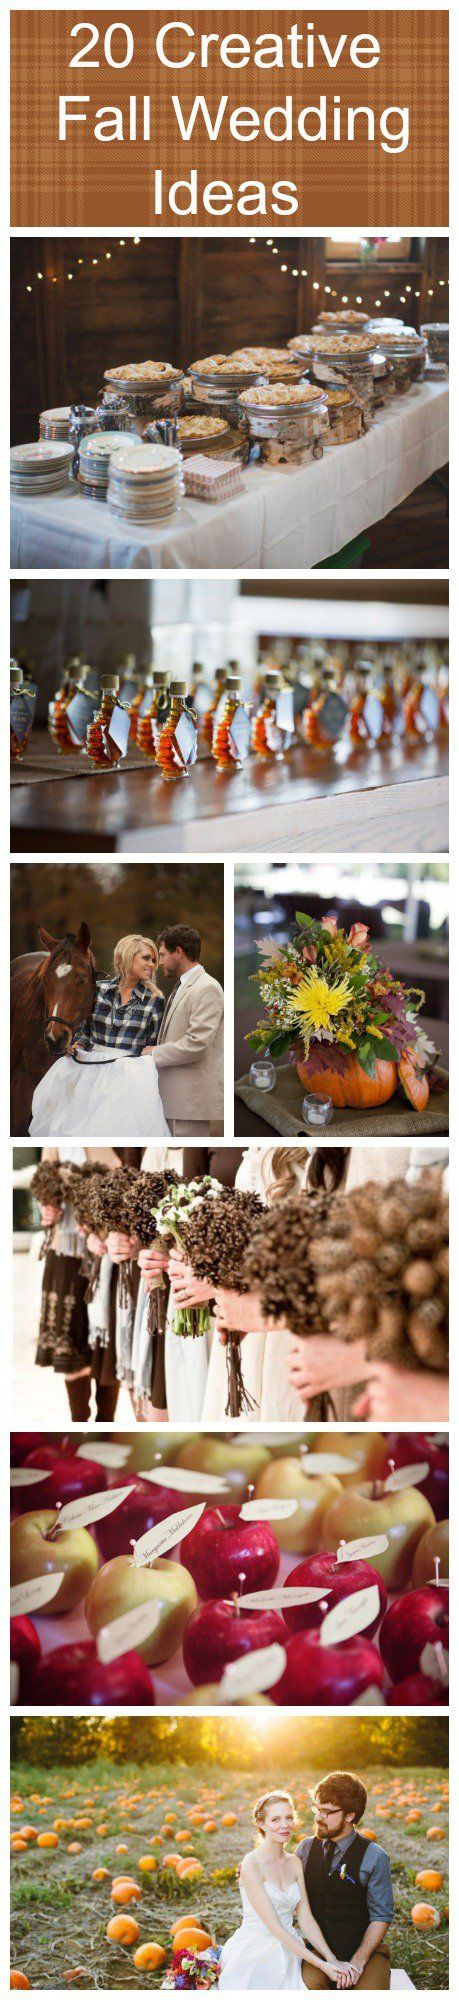 Creative Fall Wedding Ideas